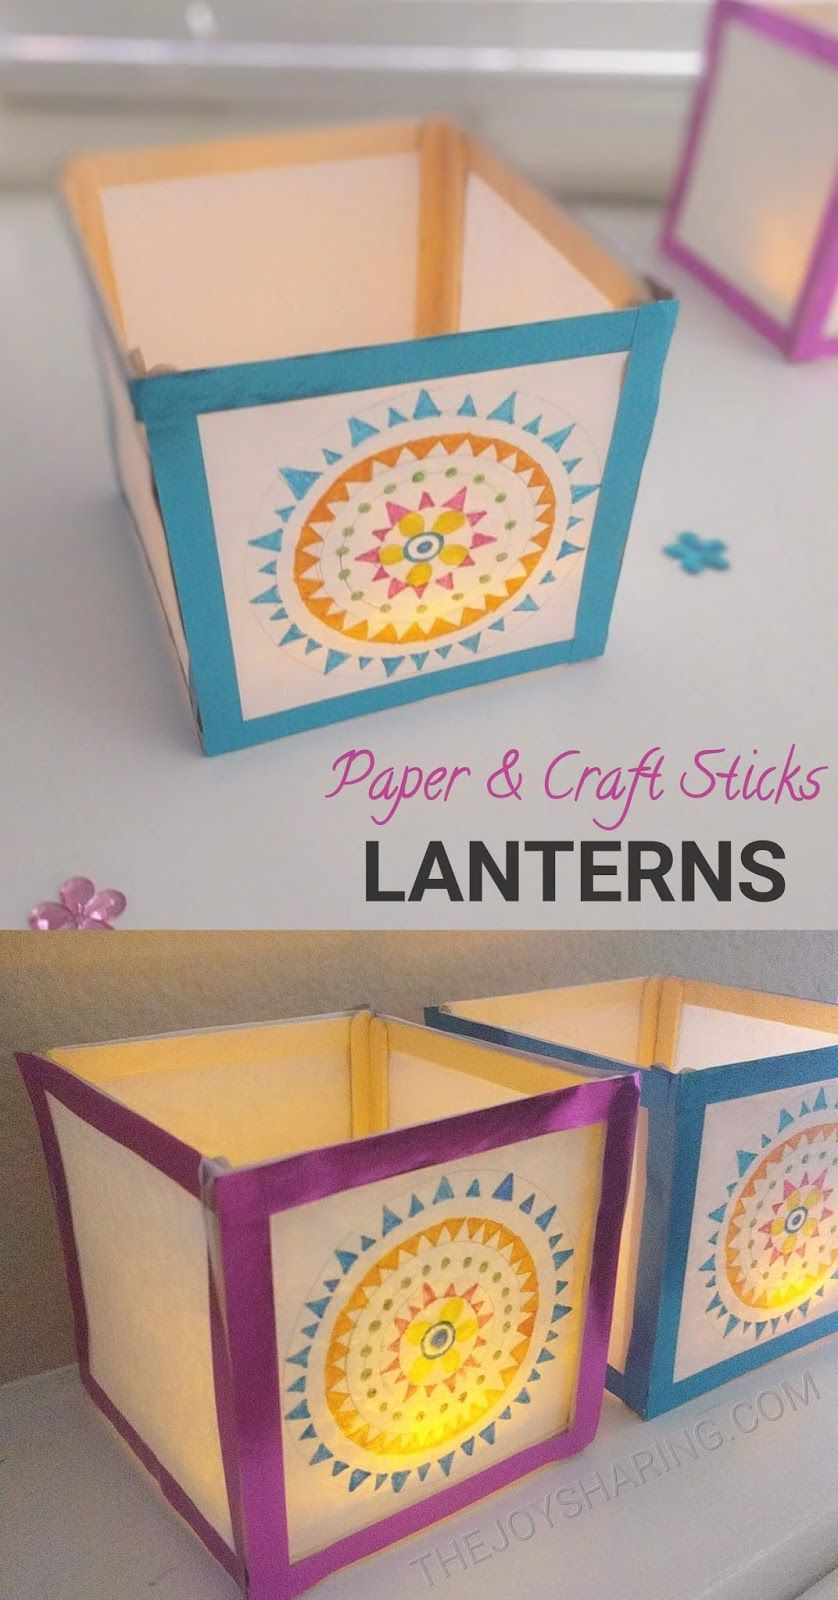 How To Make Paper Lantern Craft #craft